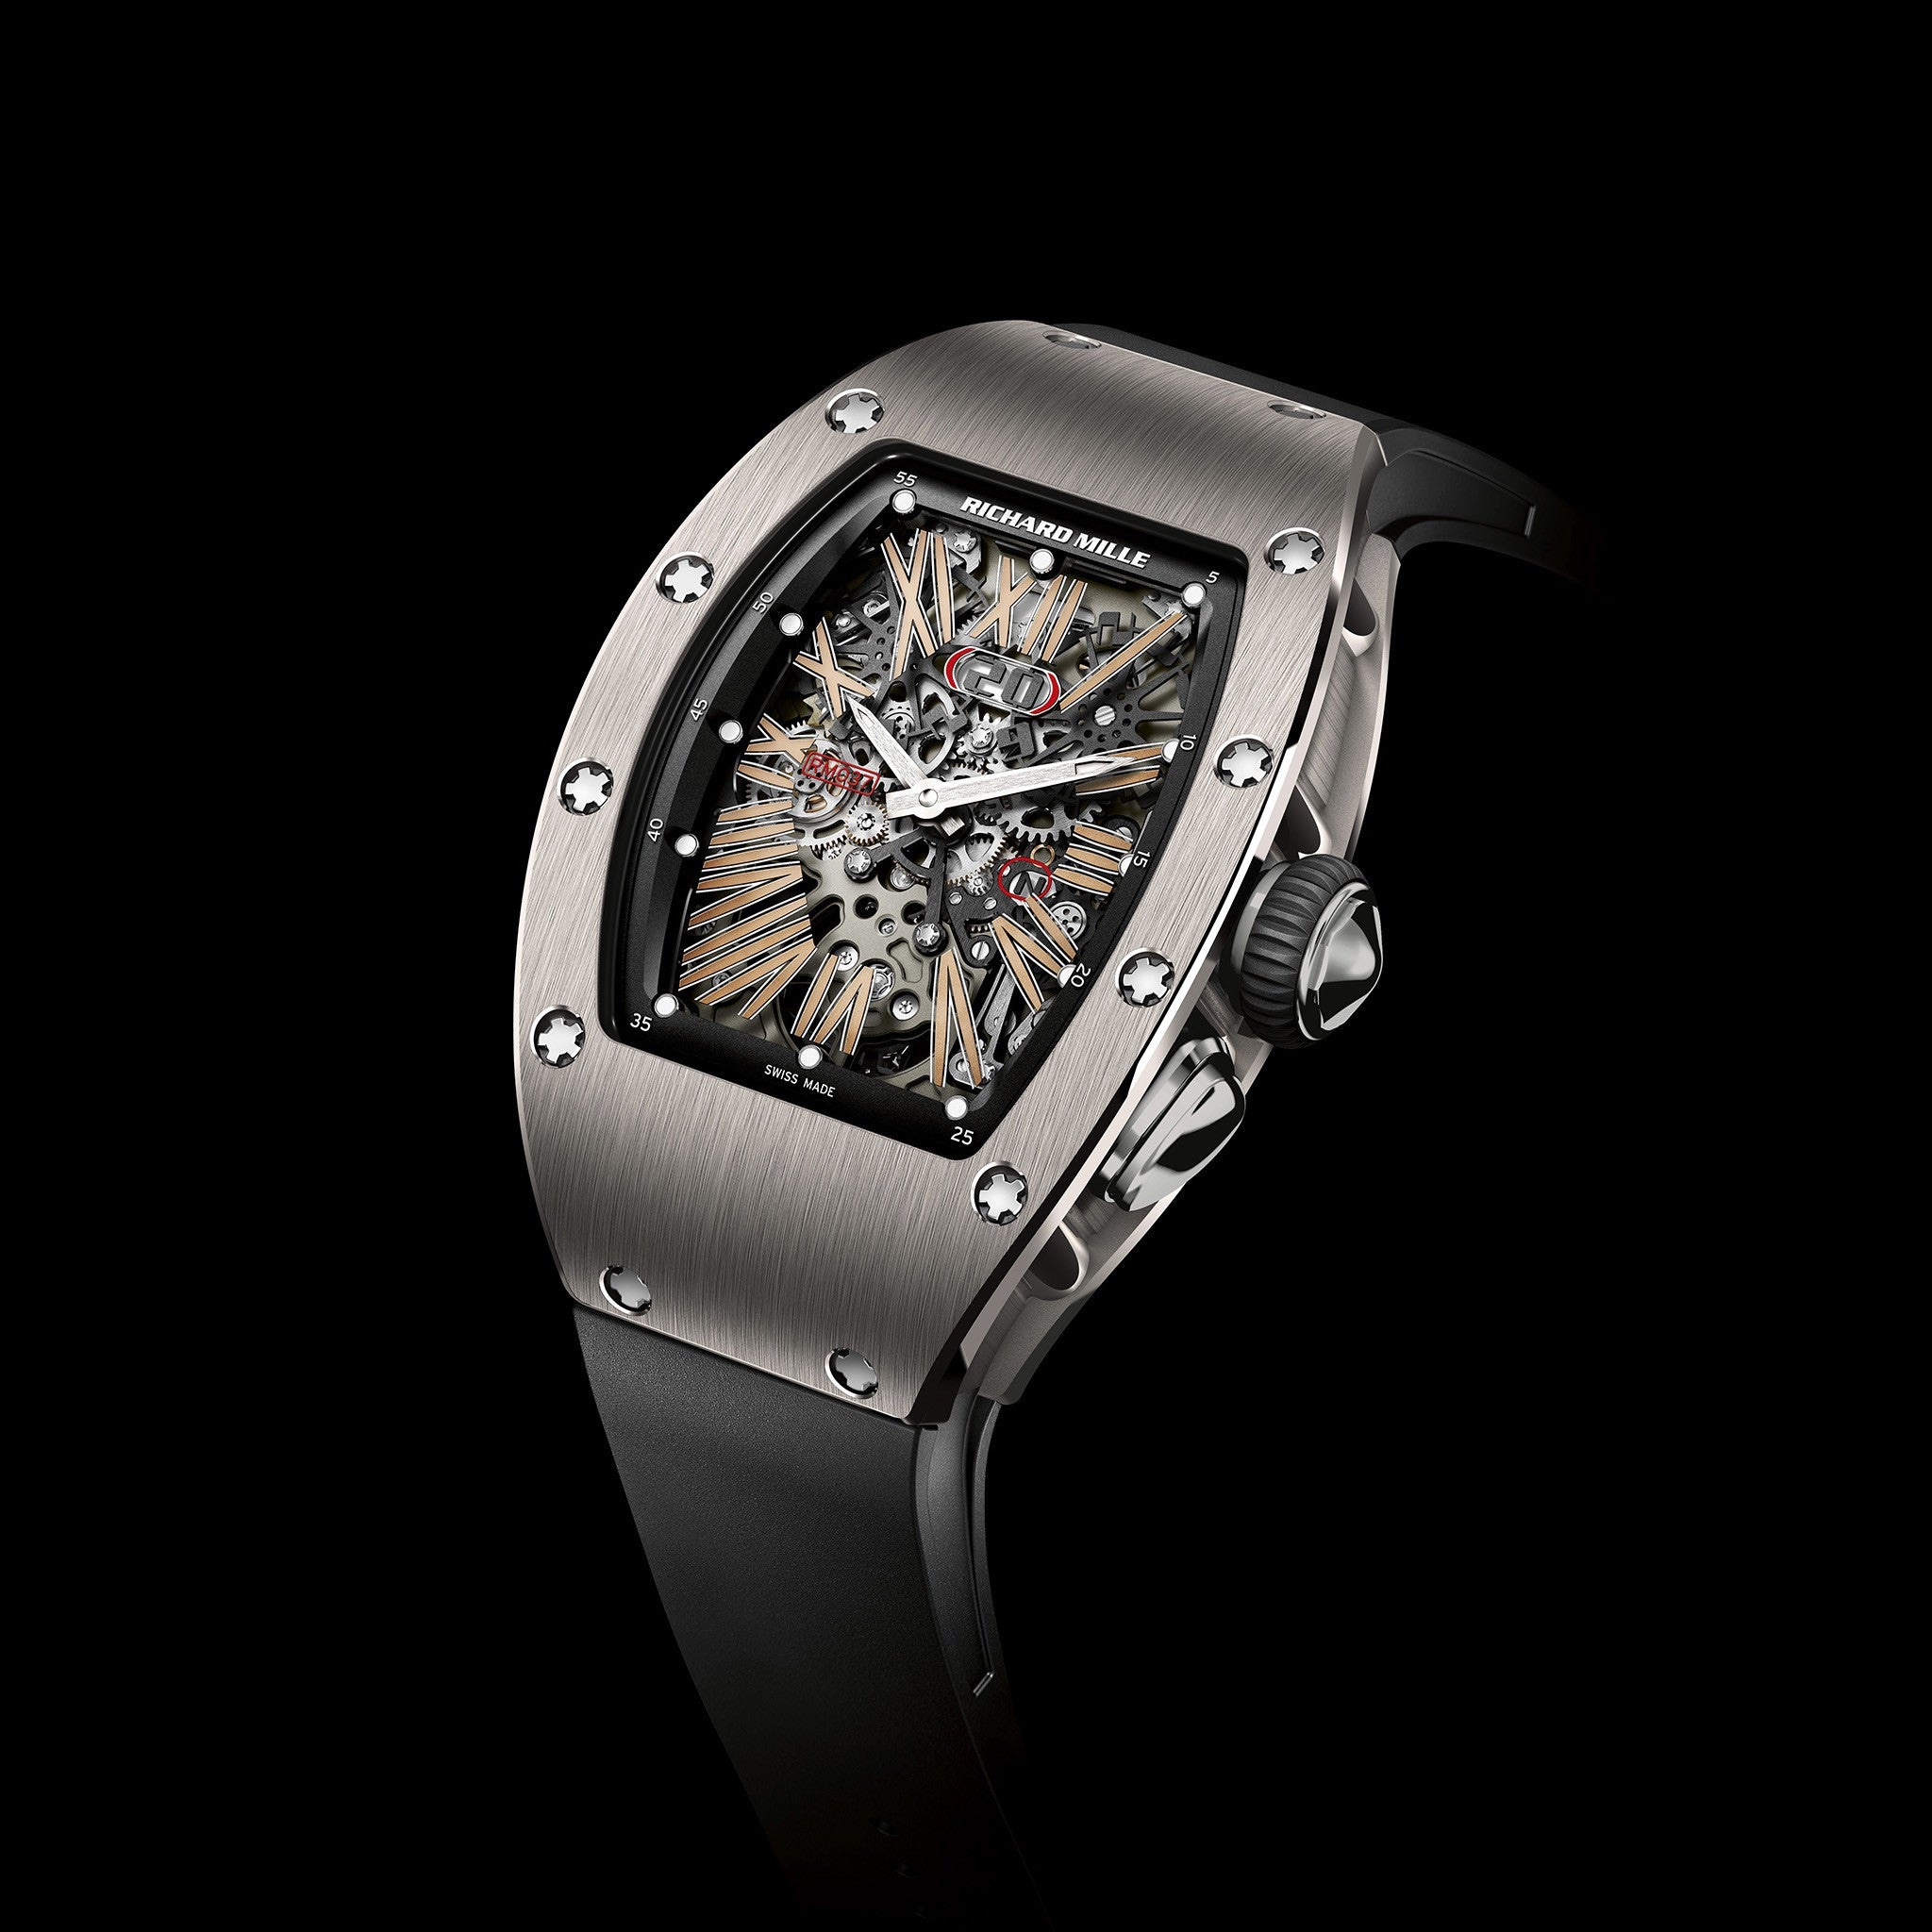 RM 037 Titanium Ladies Automatic - Richard Mille